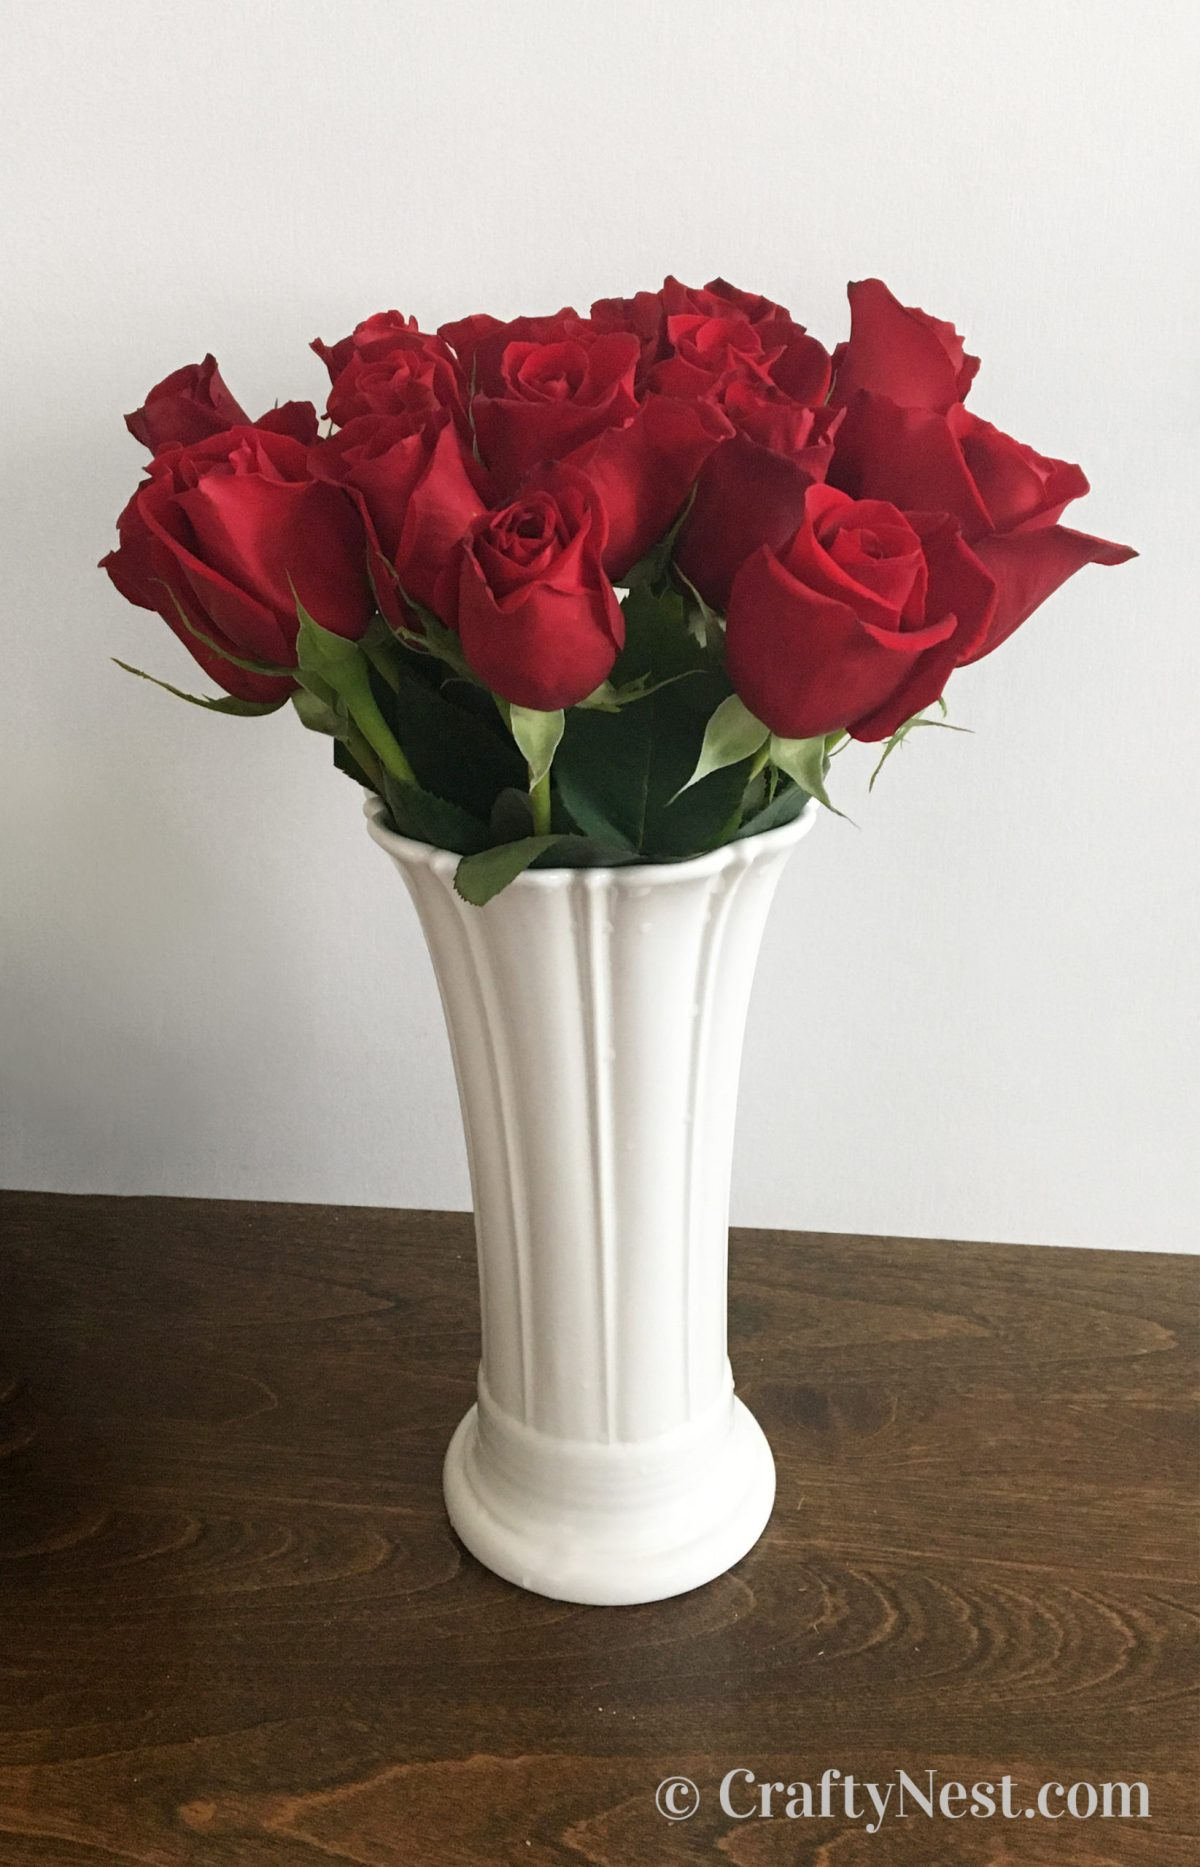 Vase of red roses, photo